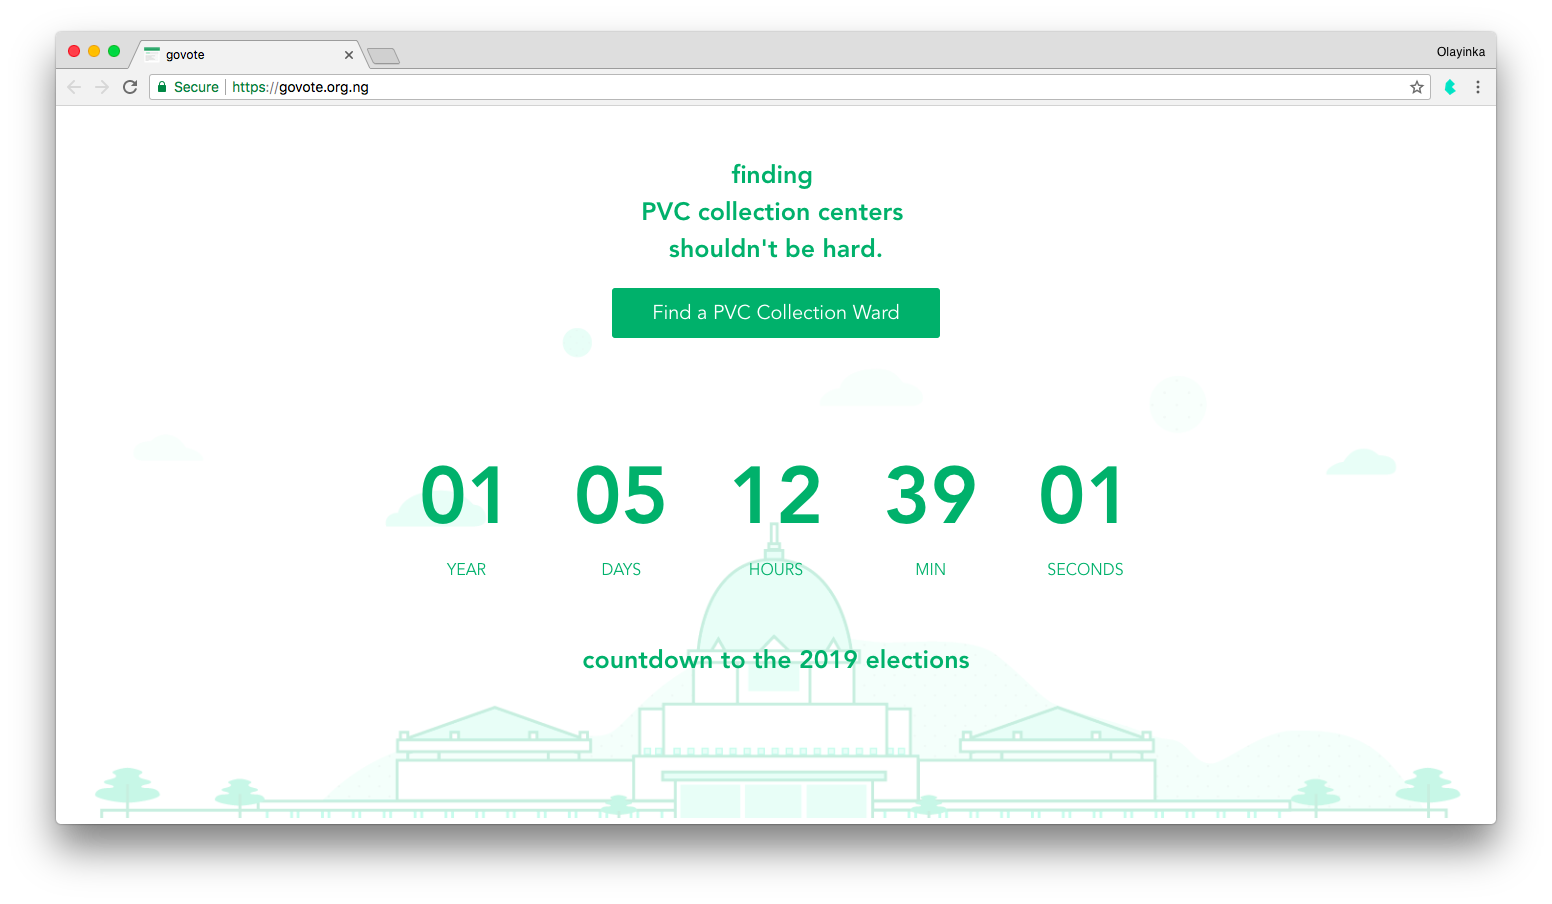 GoVote Landing Page